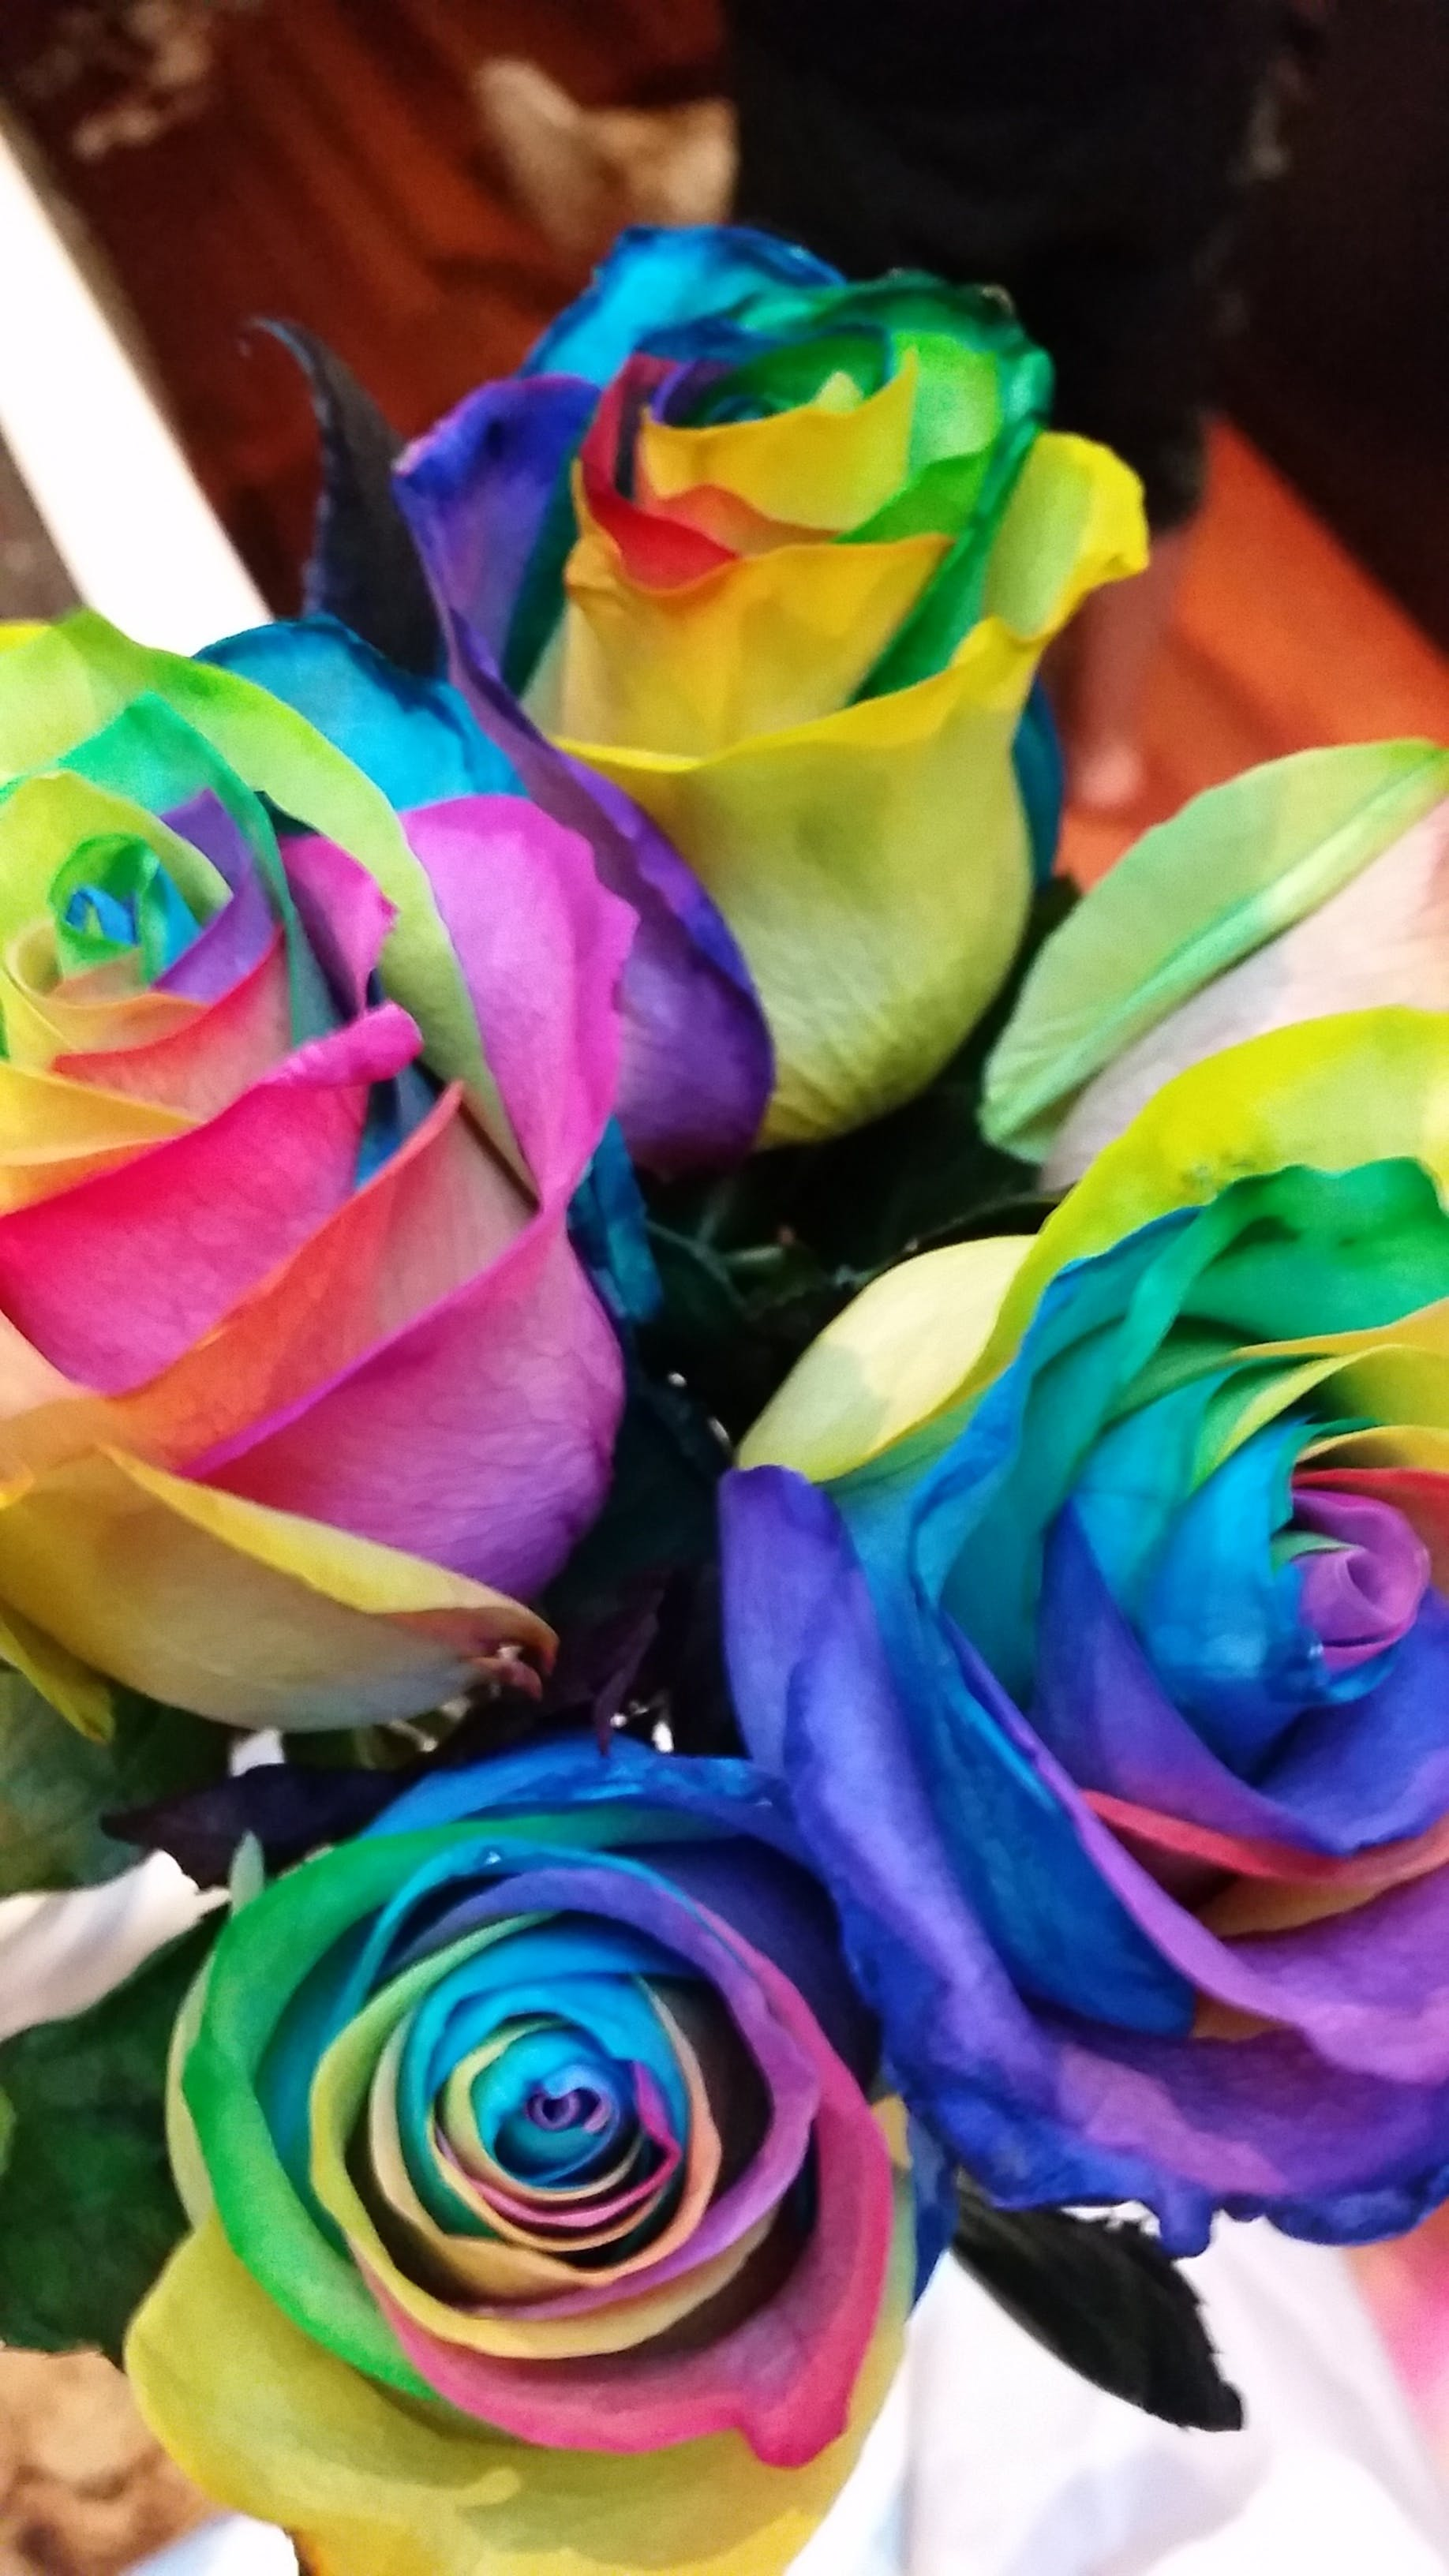 Free stock photo of roses, rainbow, Colourful flowers, Colourful roses